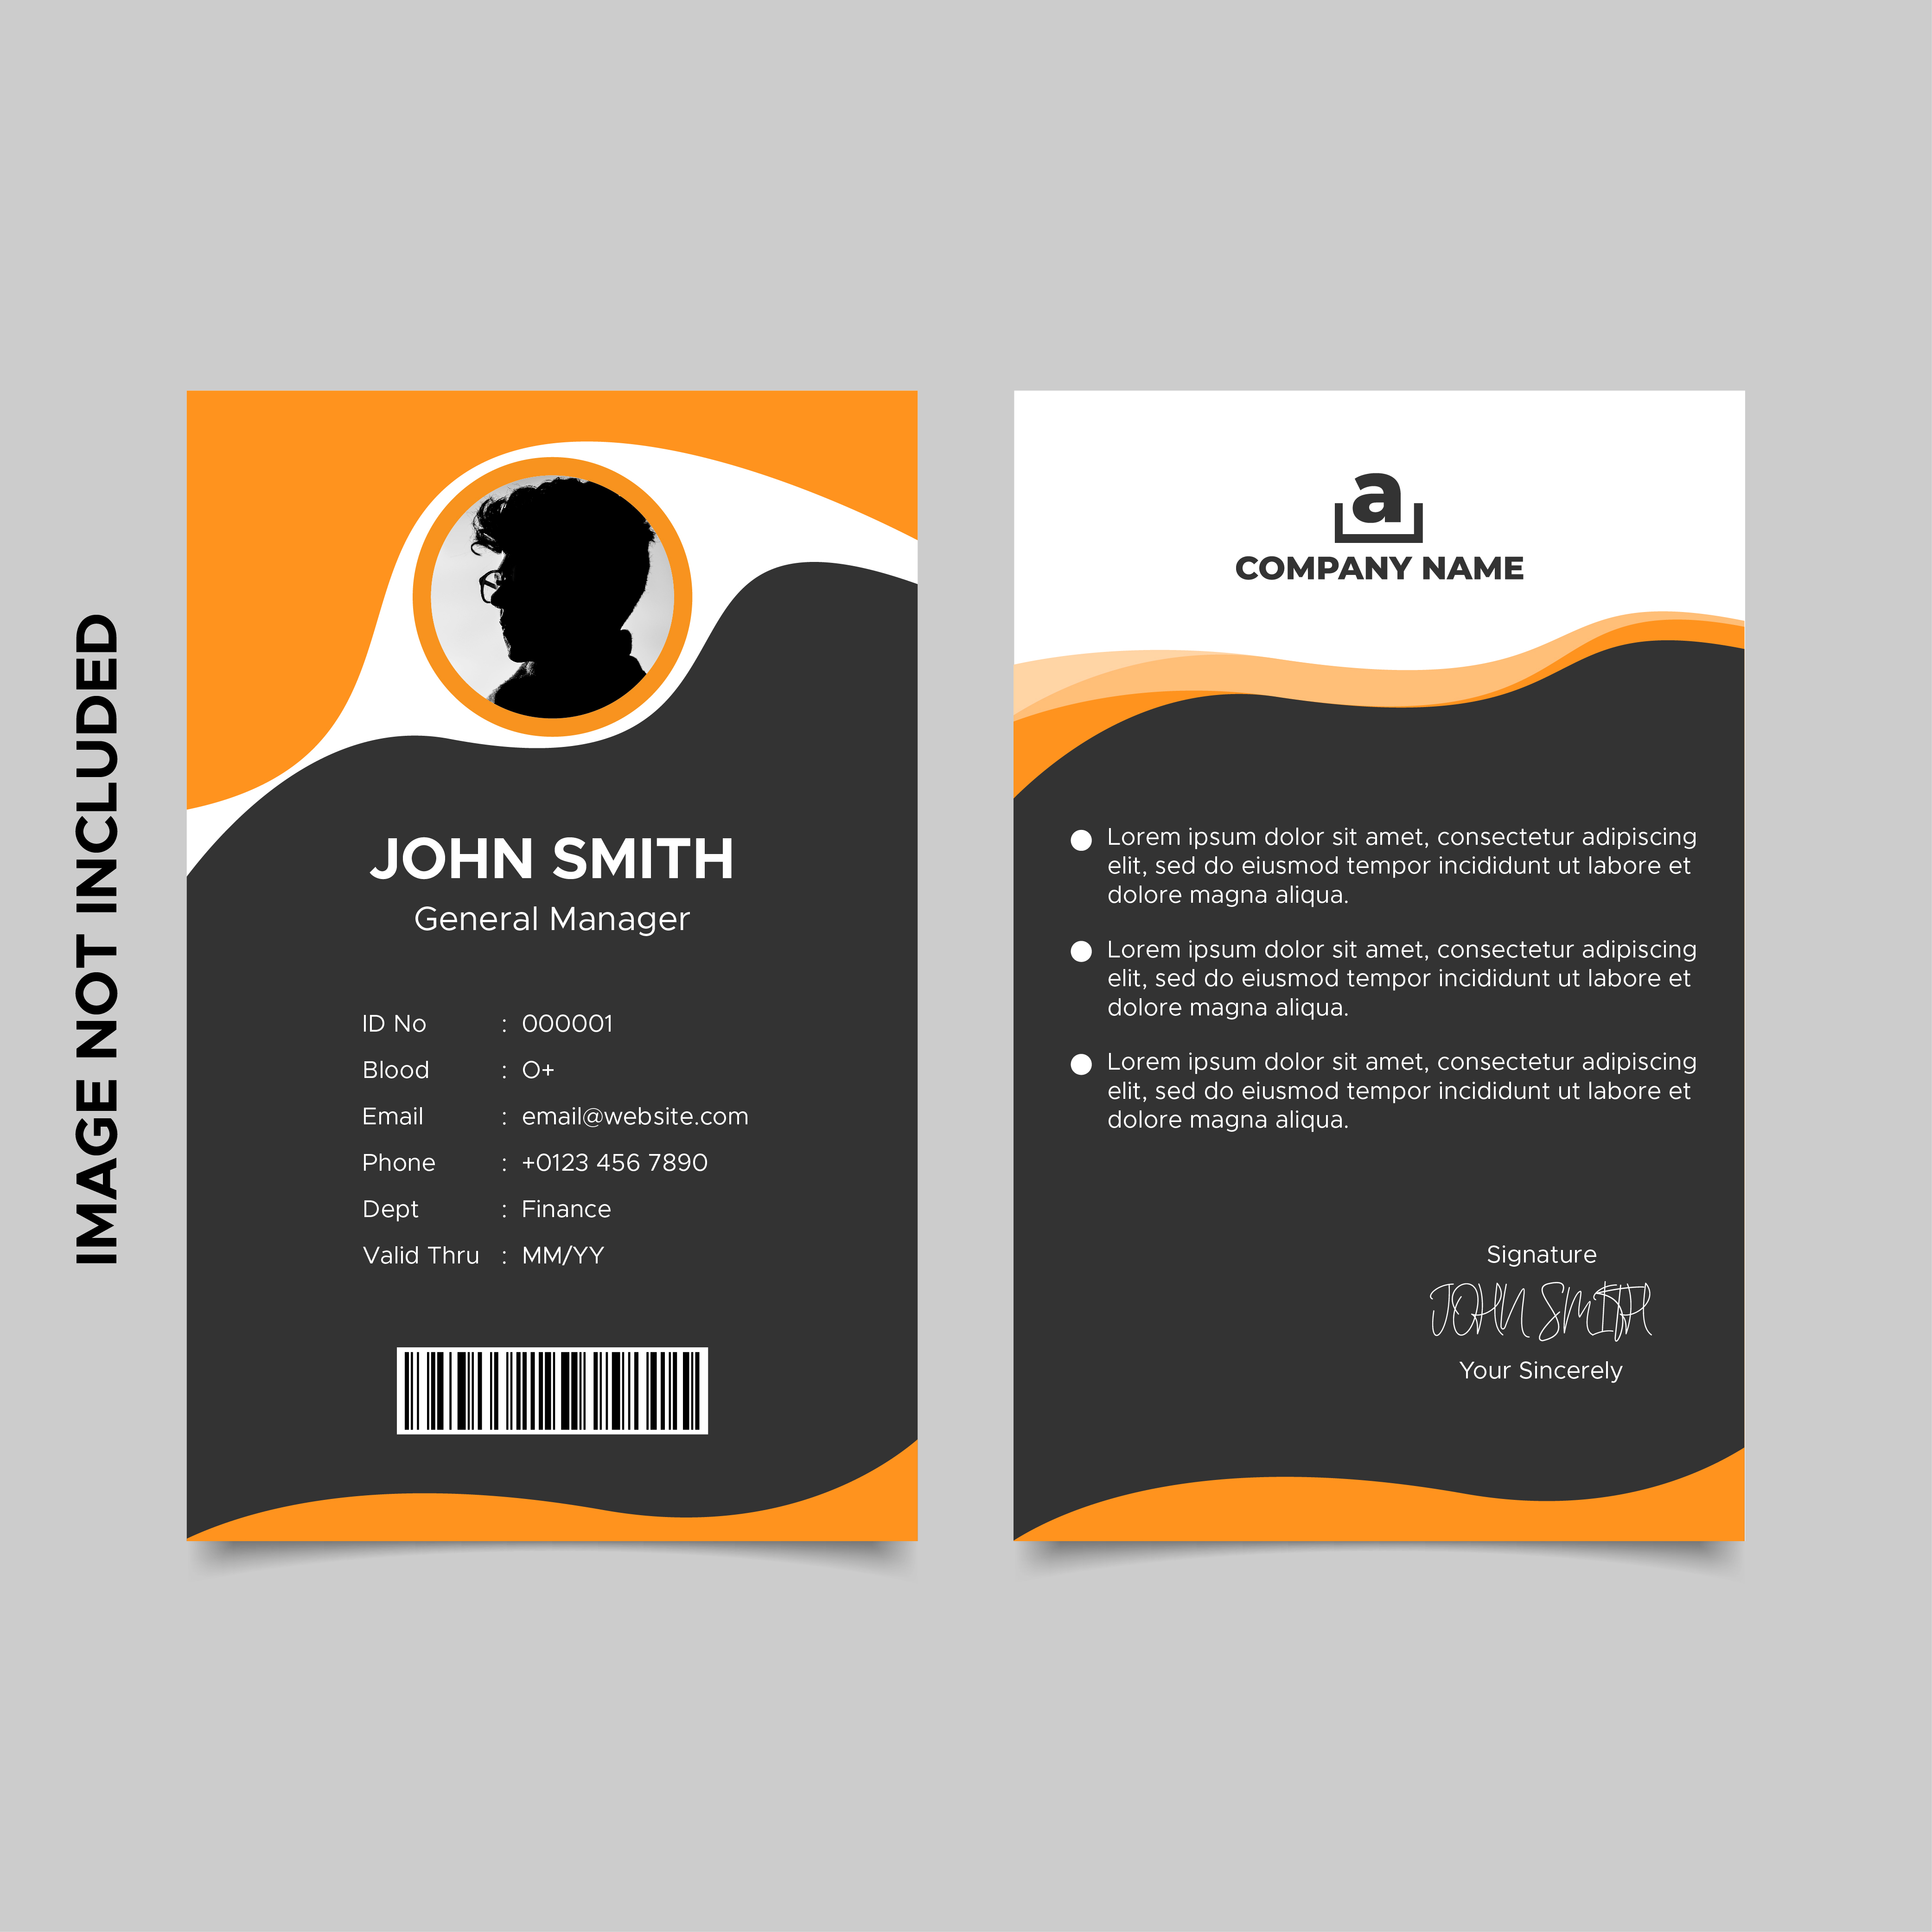 Employee Id Template from static.vecteezy.com